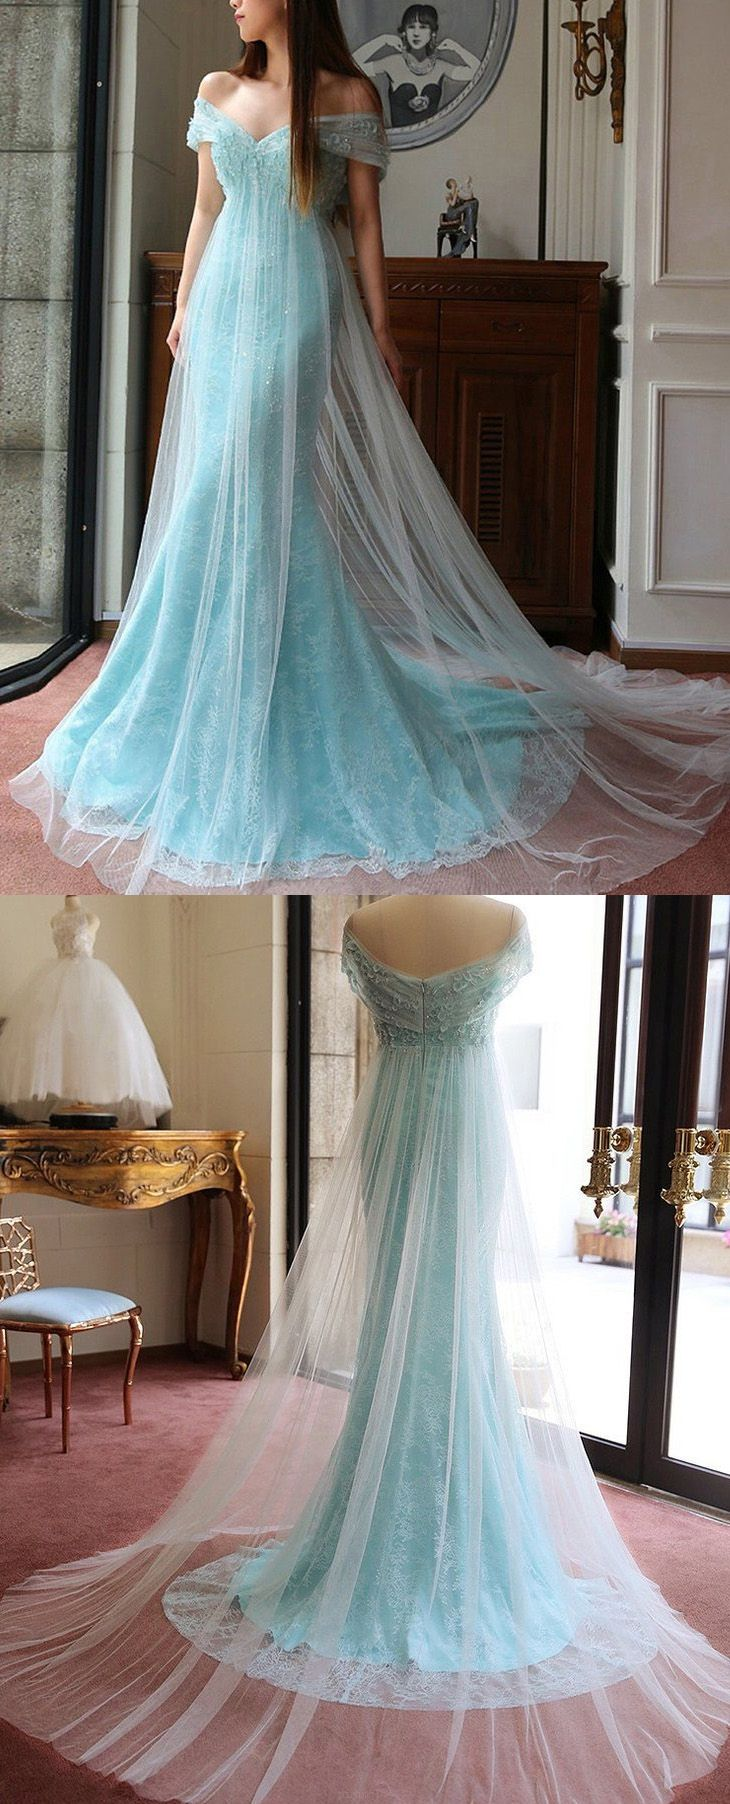 Custom made sweep train prom evening dress long light blue dresses